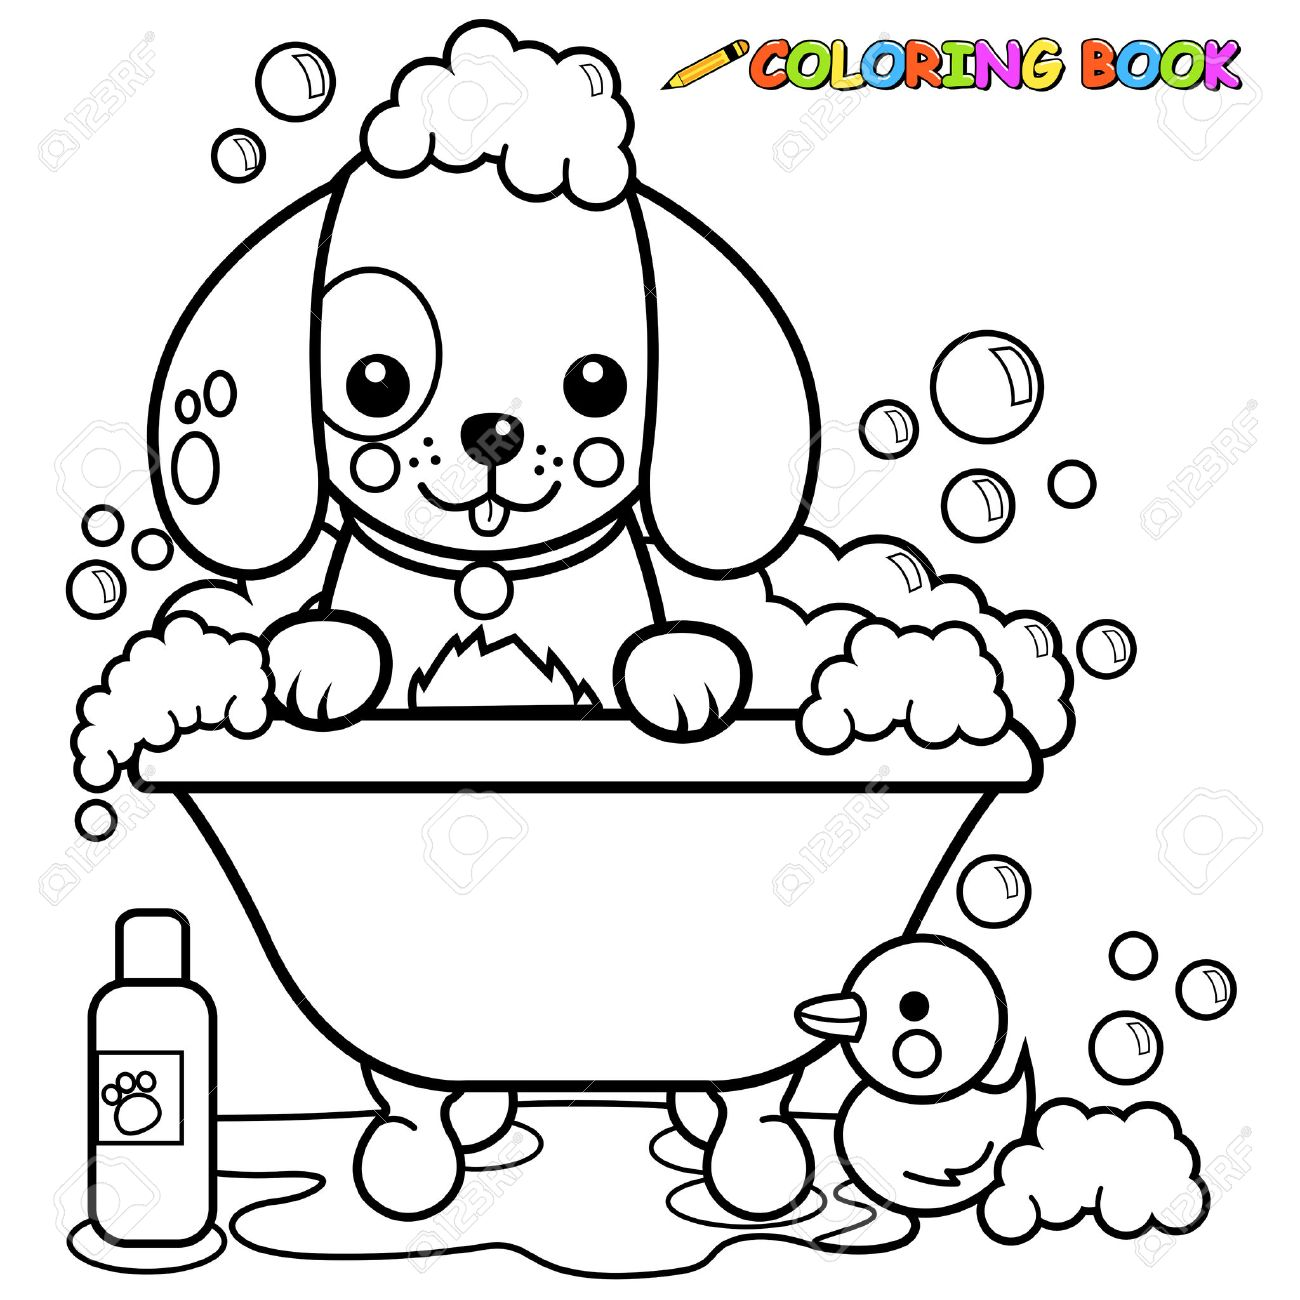 Dog taking a bath coloring book page - 50050666